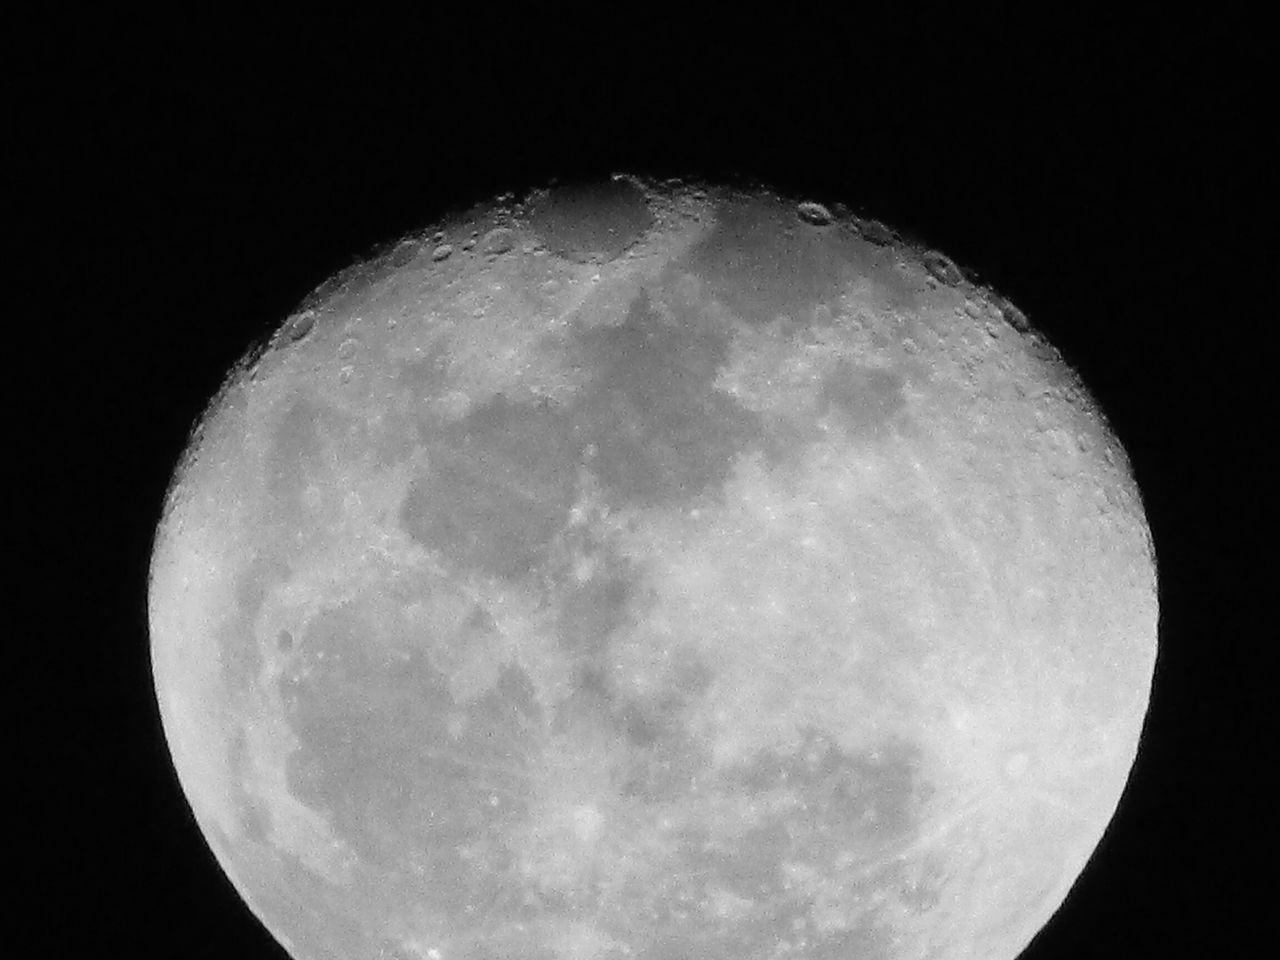 moon, night, moon surface, planetary moon, astronomy, no people, clear sky, beauty in nature, close-up, tranquility, nature, scenics, space, outdoors, space exploration, sky